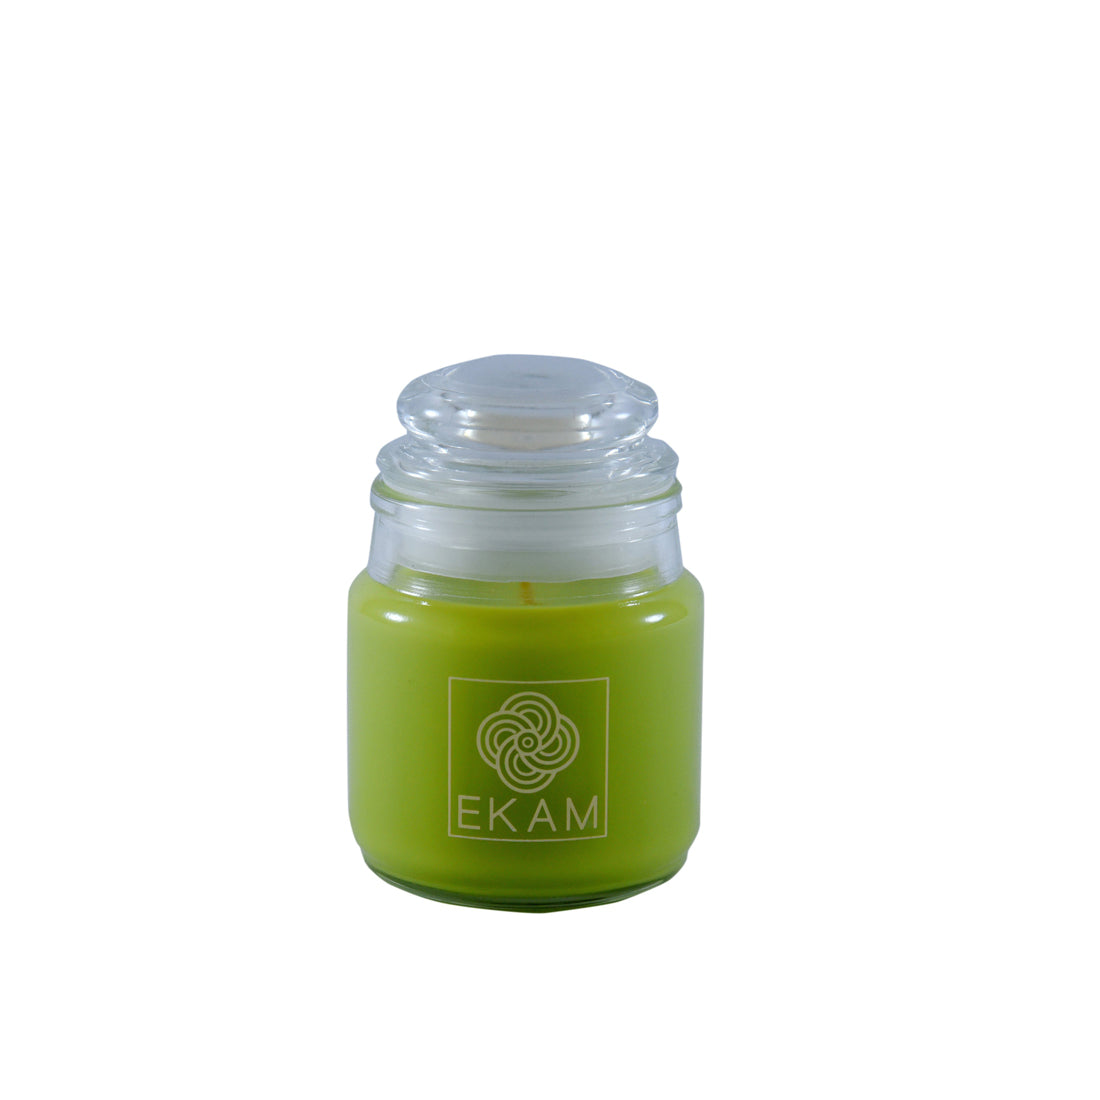 Lemongrass Scented Jar Candle